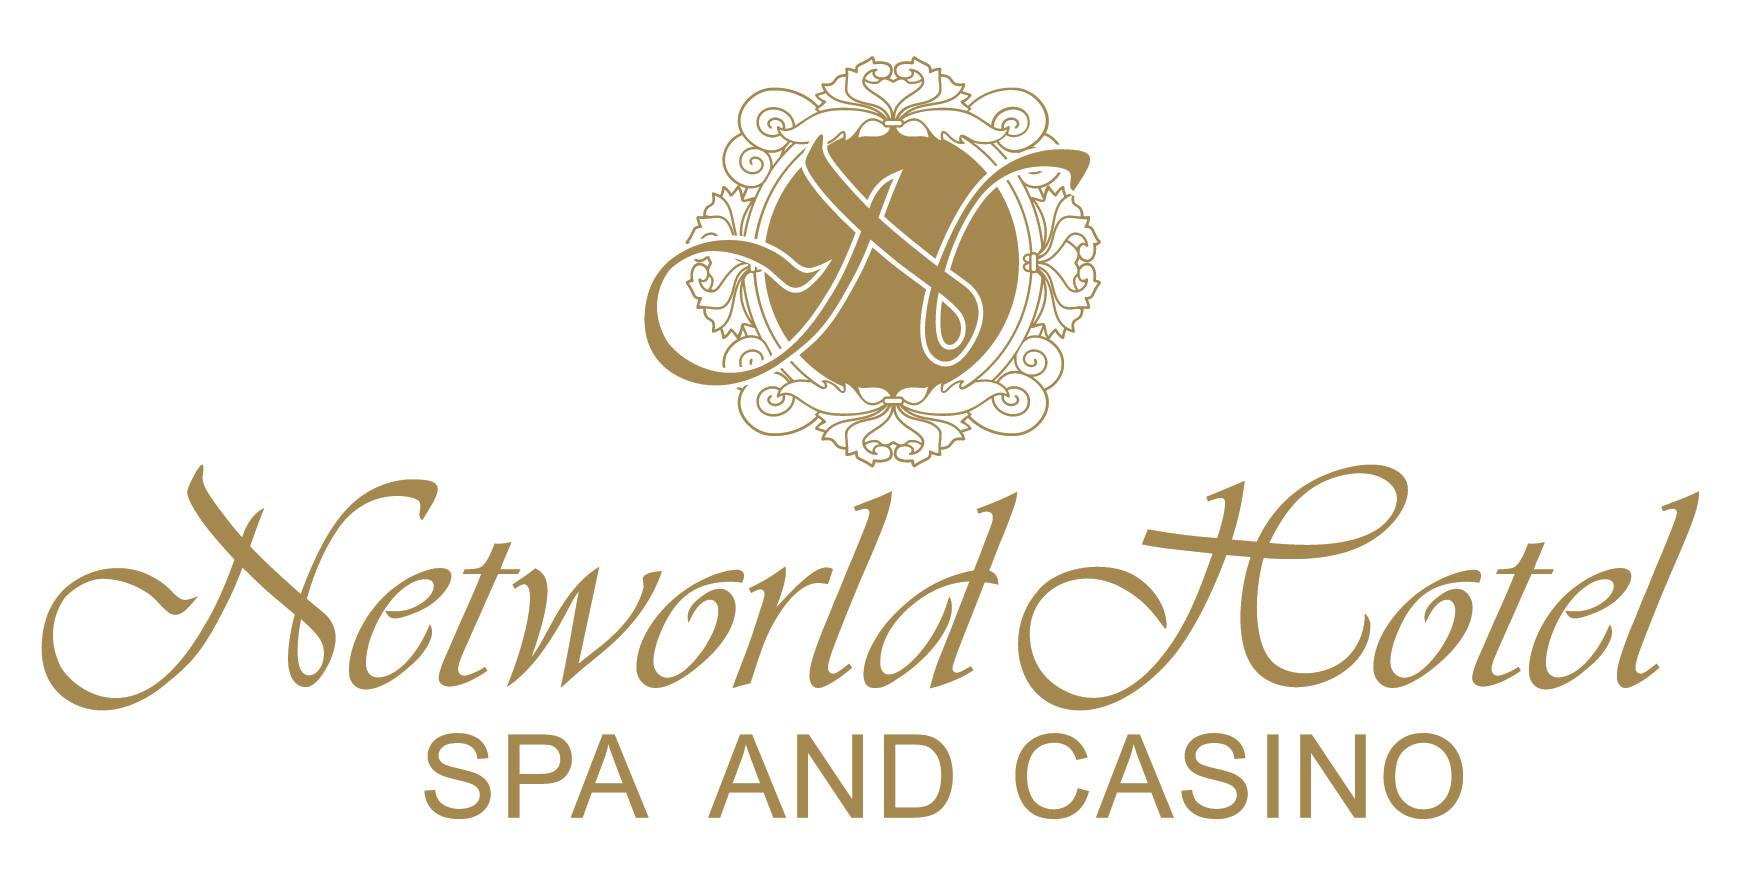 Hr Manager from Networld Hotel Spa and Casino